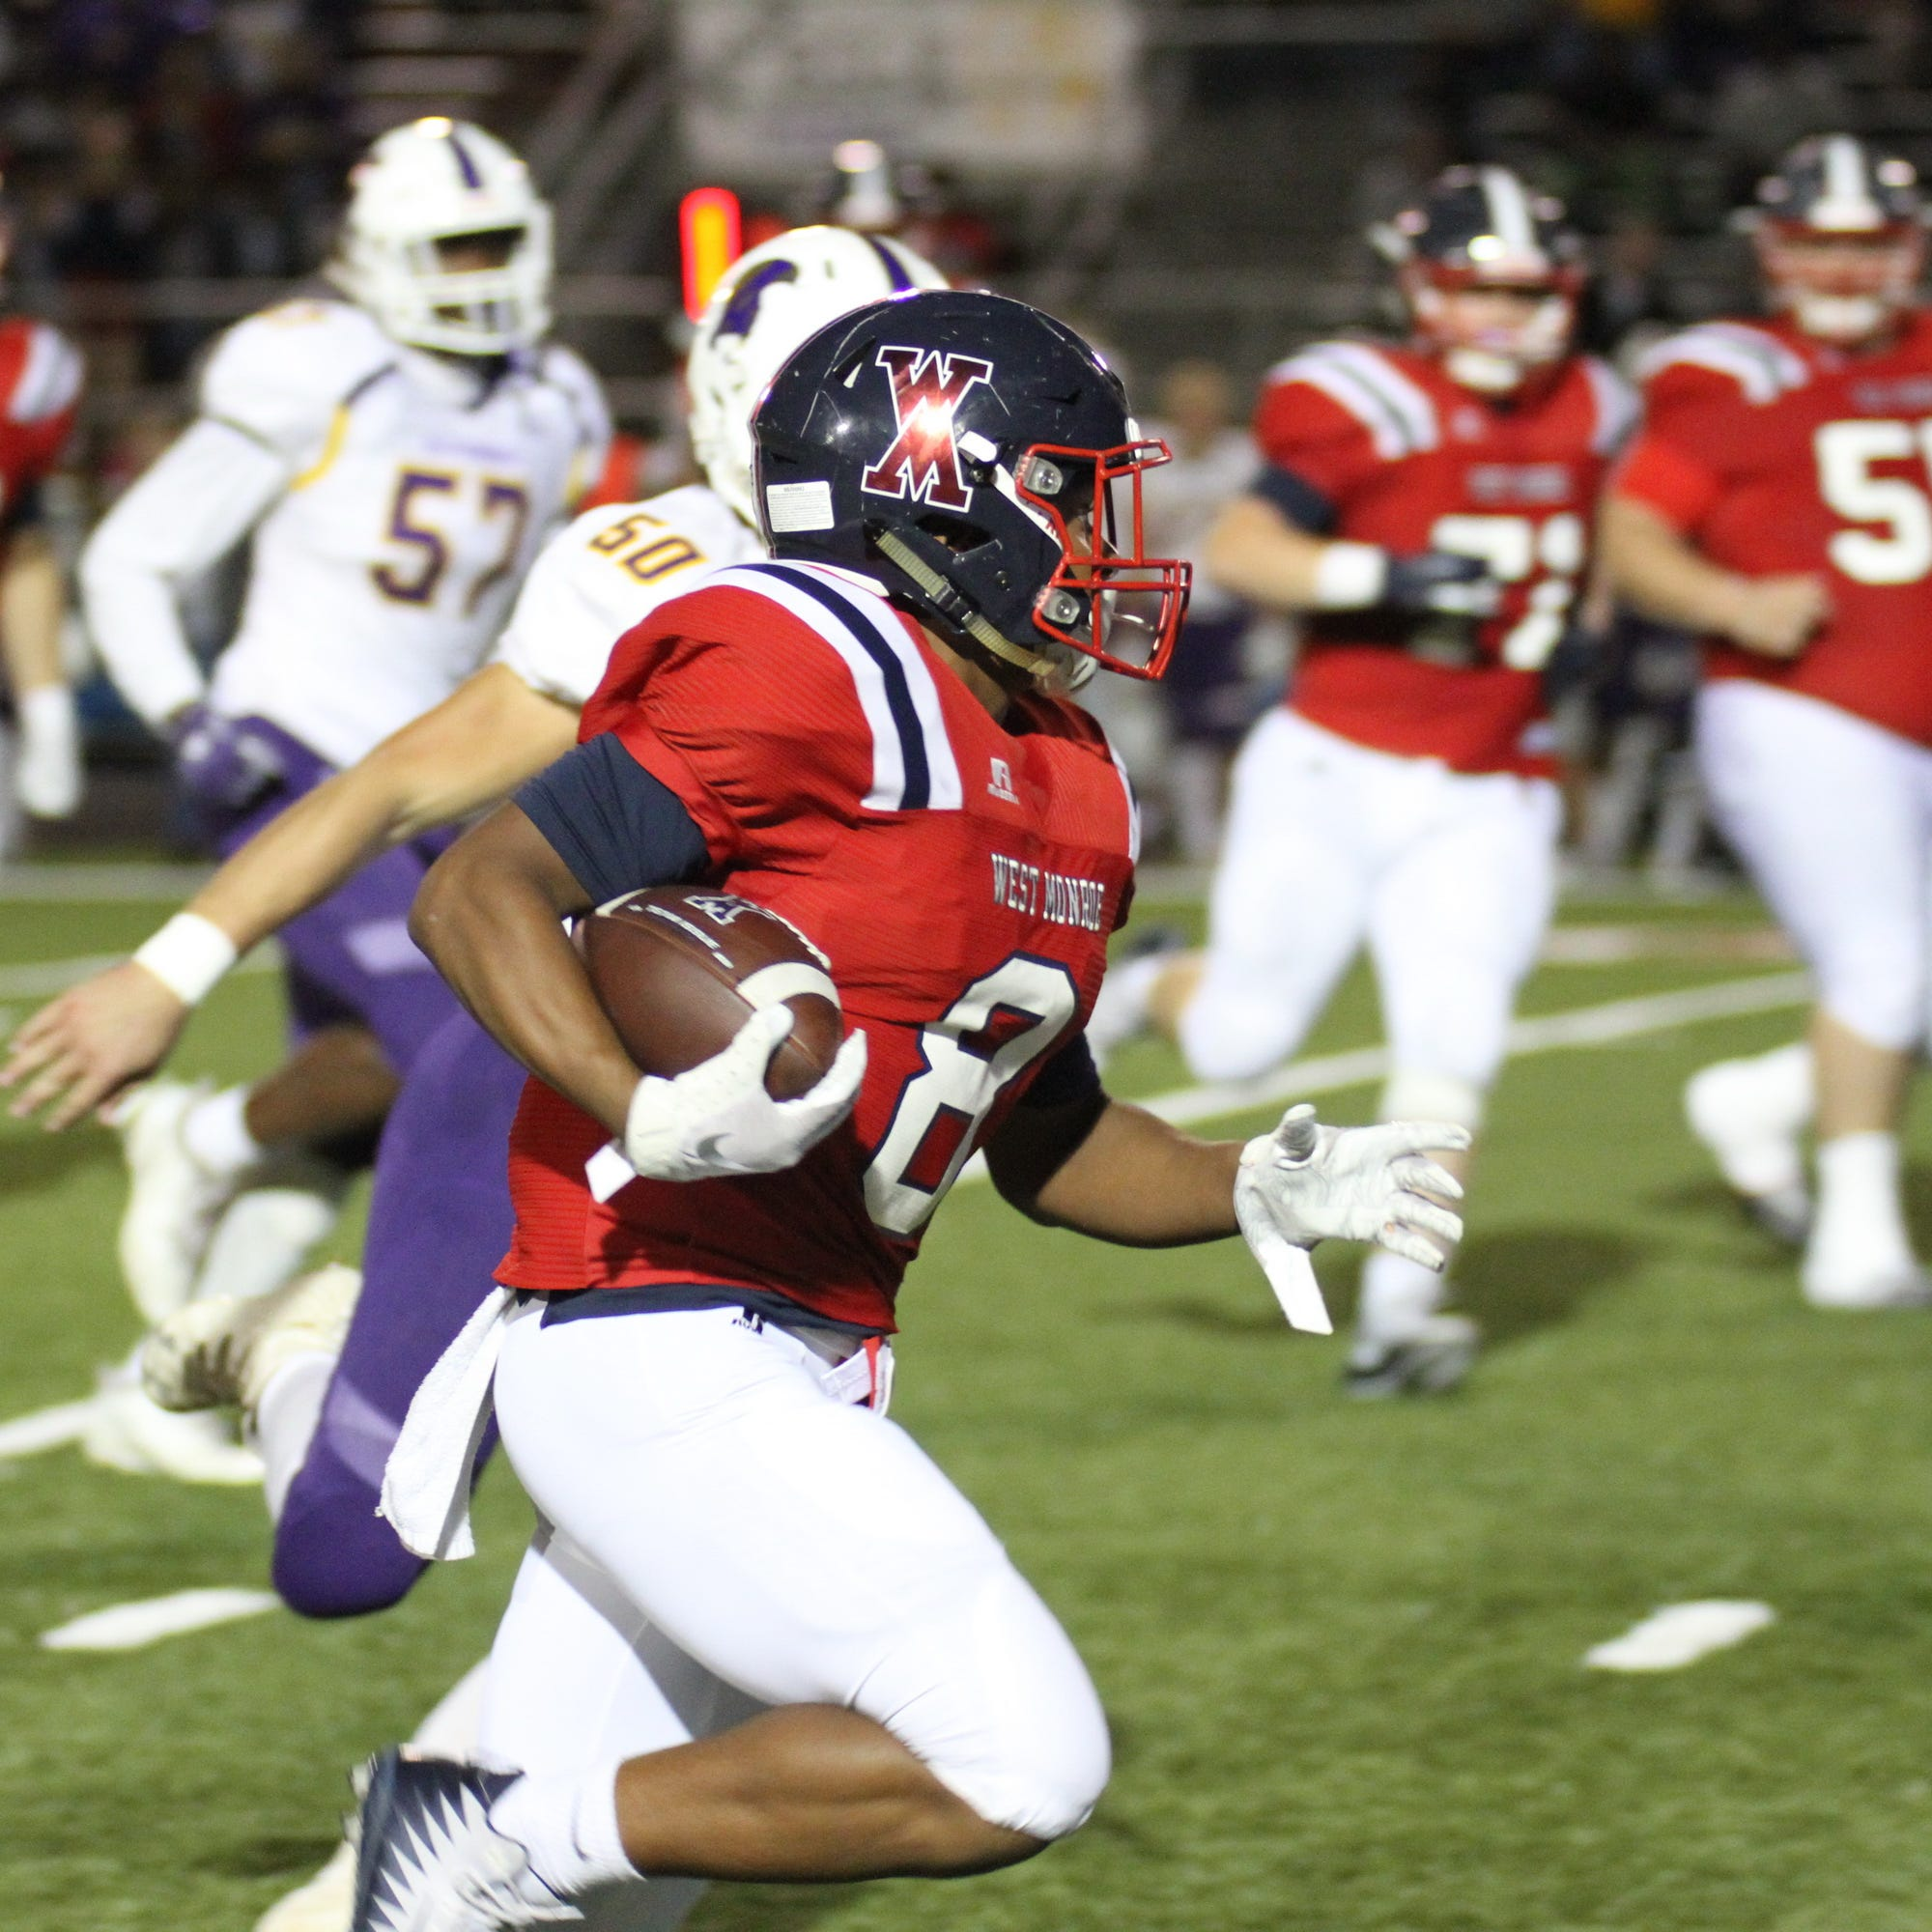 West Monroe defeats Alexandria 37-17 at West Monroe High School in West Monroe, La. on Oct. 12